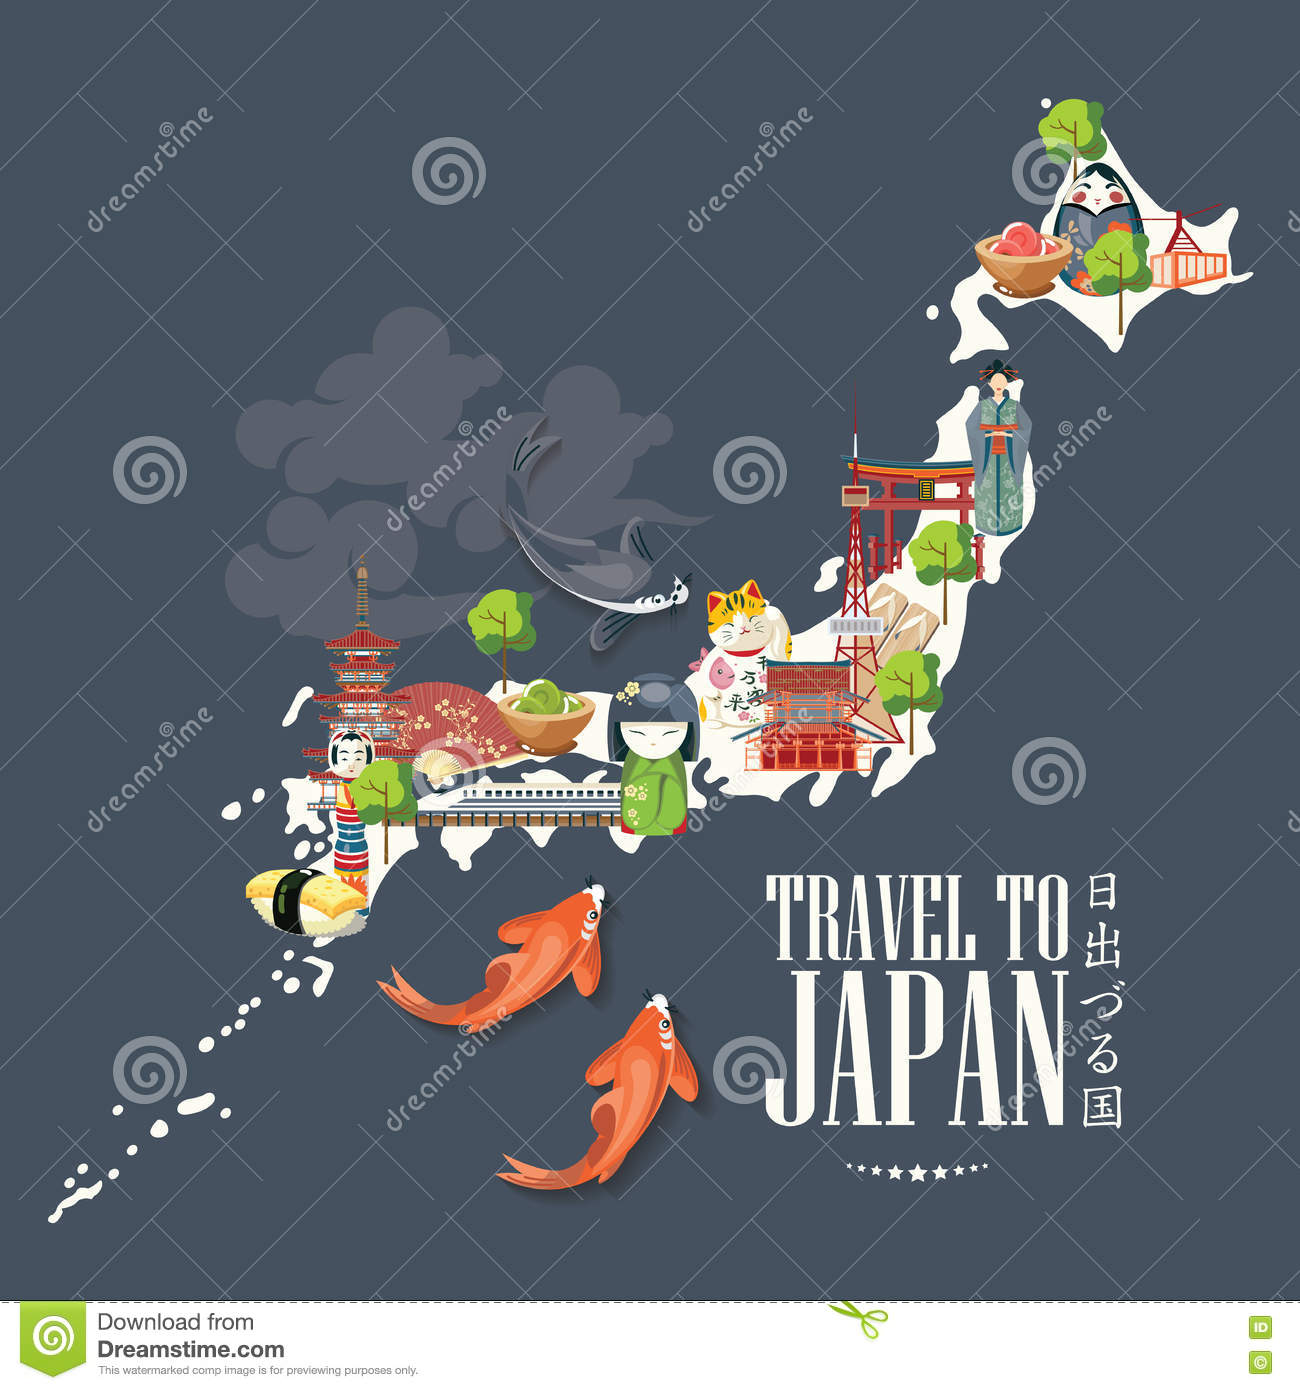 Japan Travel Poster With Map On Dark Background Travel To Japan - Japan map poster